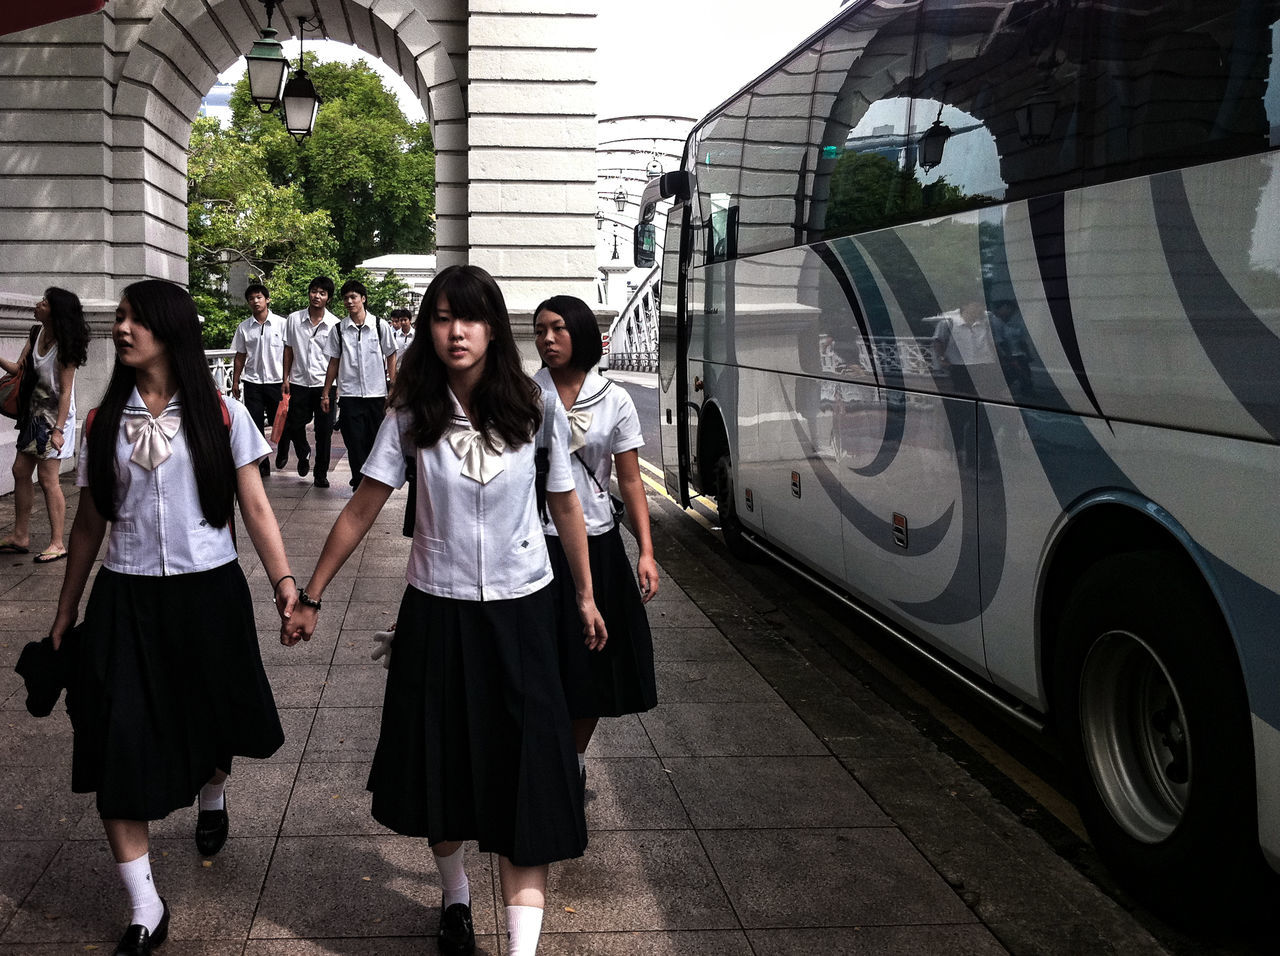 Students Japanese  School Outdoors People City Excursion Bus Transportation Holding Hands Walking Uniform Singapore Street Photography Streetphotography Streetphoto_color Everybodystreet IPhone Photography